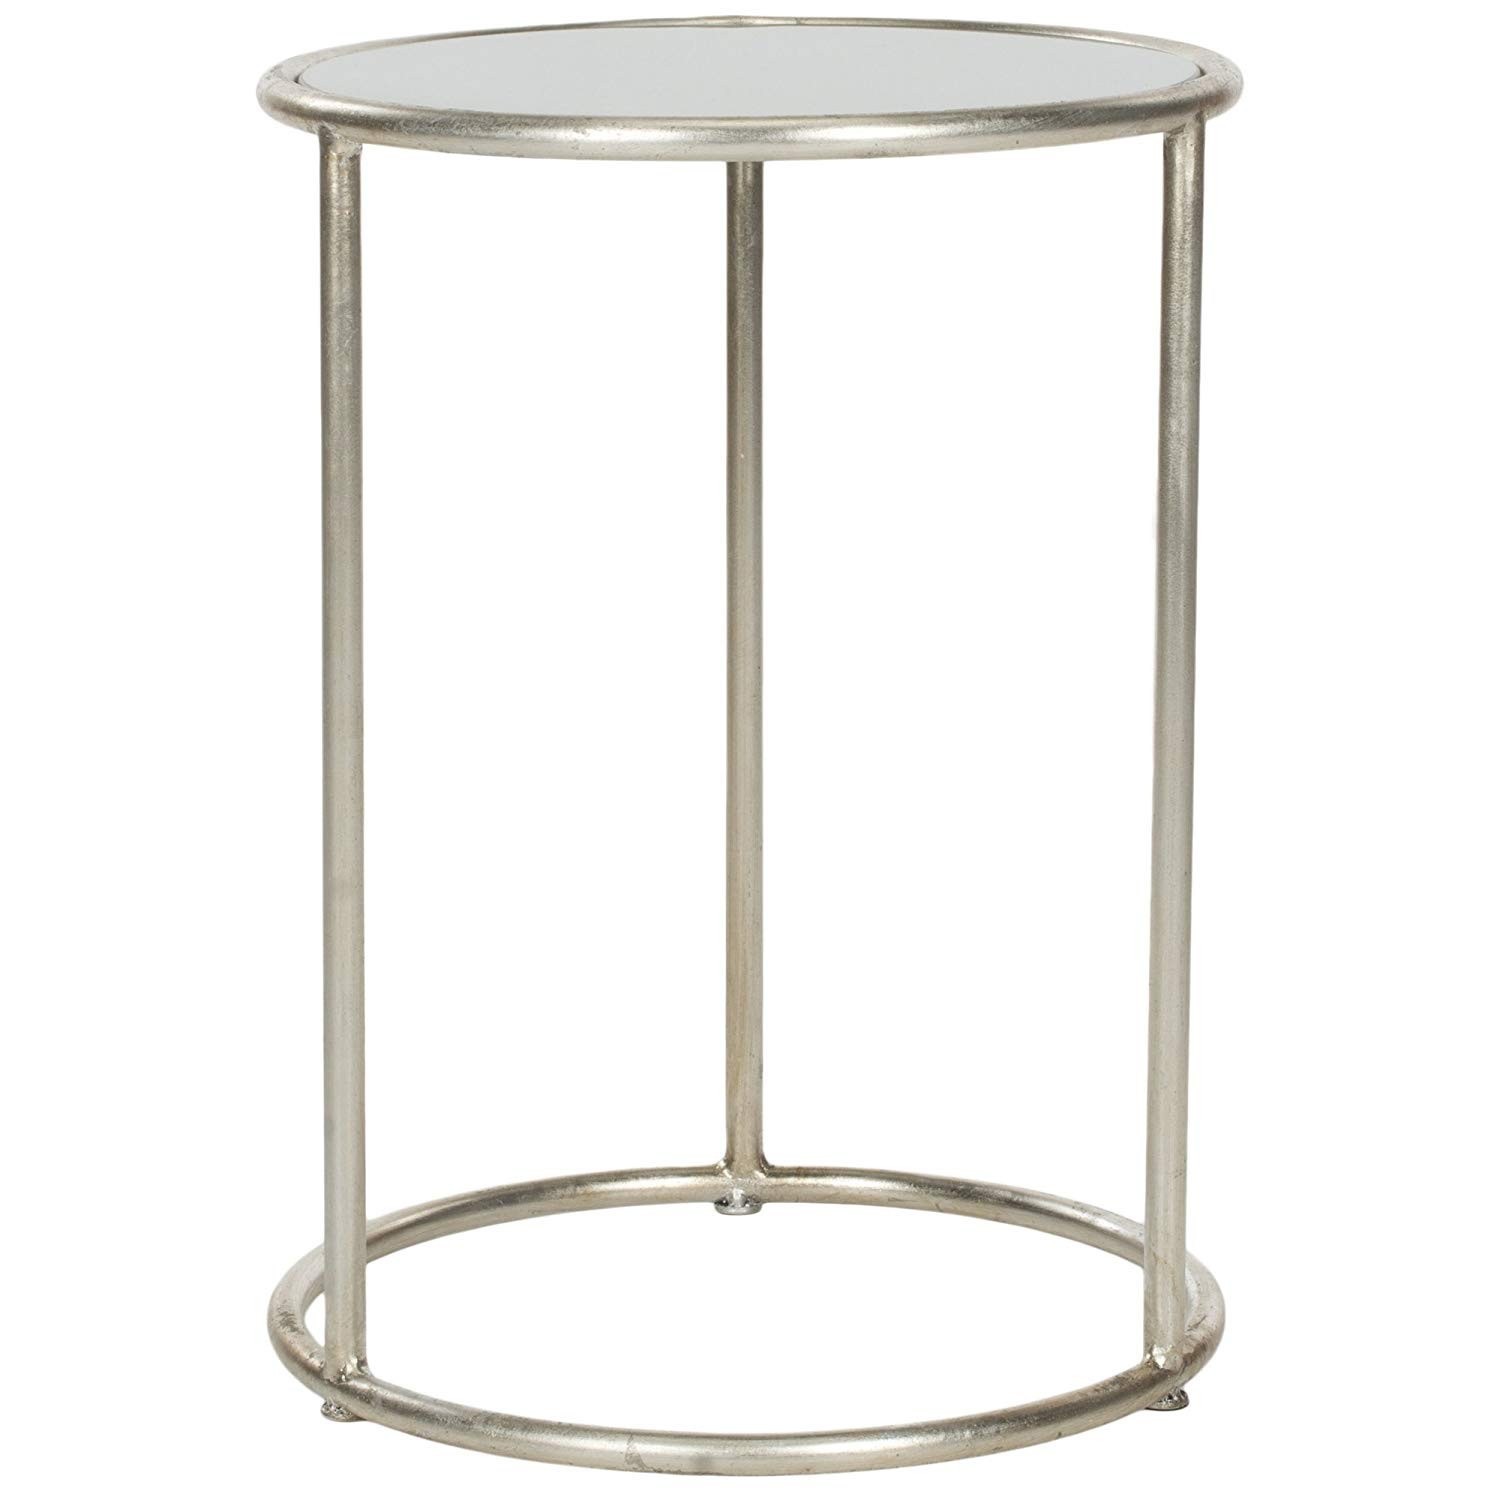 best metal accent table with glass top safavieh home collection shay silver reclaimed wood bar diy inch round vinyl tablecloth gallerie rugs decorative cordless lamps french style